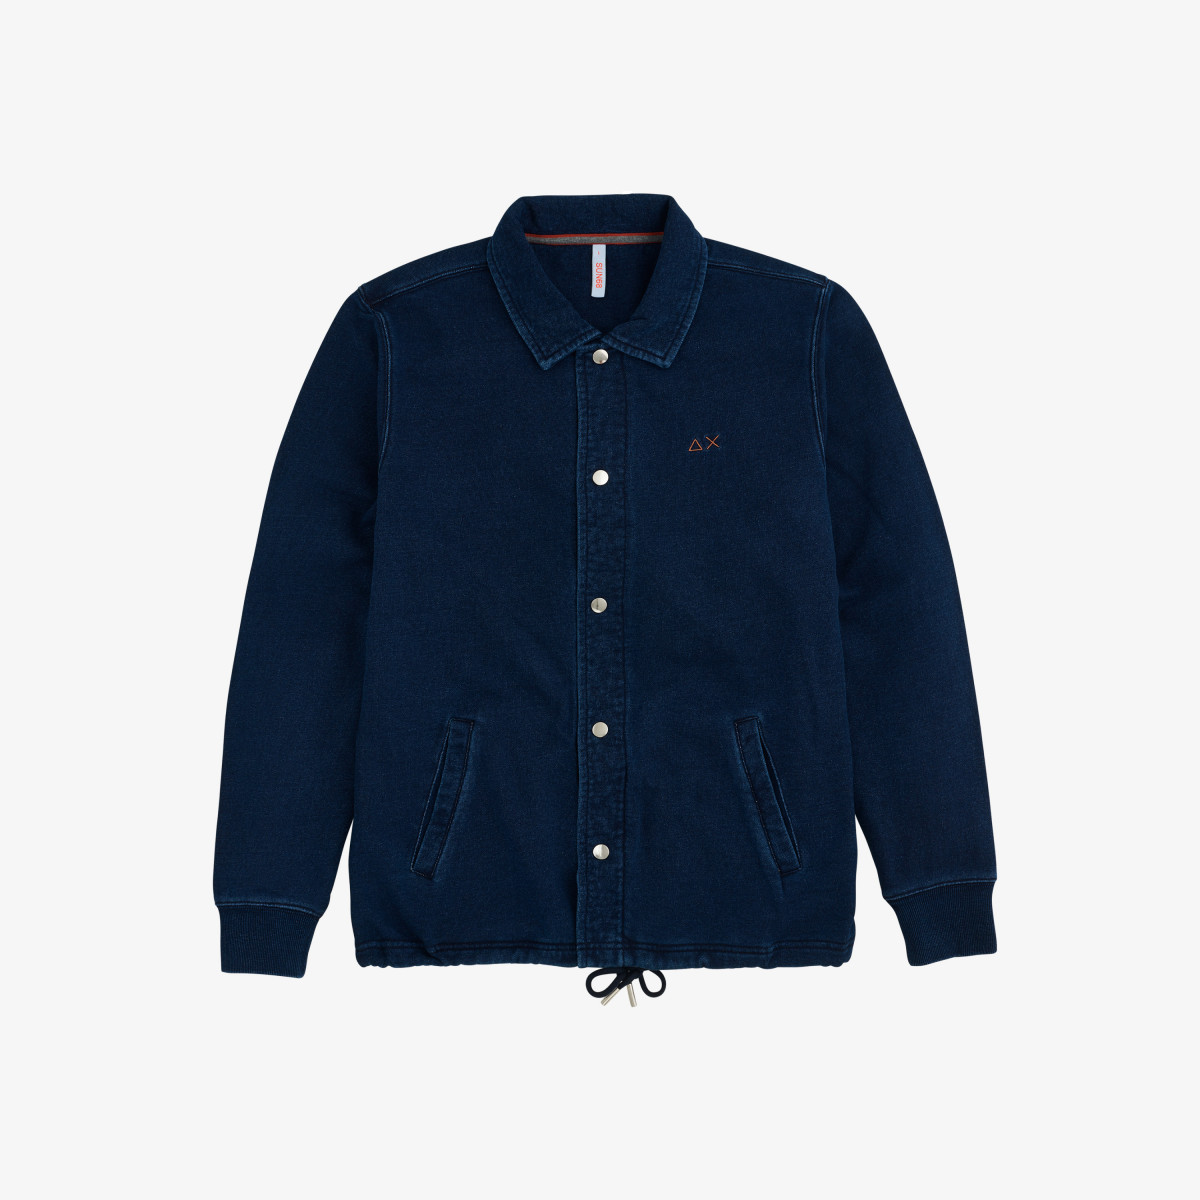 CARDIGAN INDIGO COTTON FL DARK NAVY